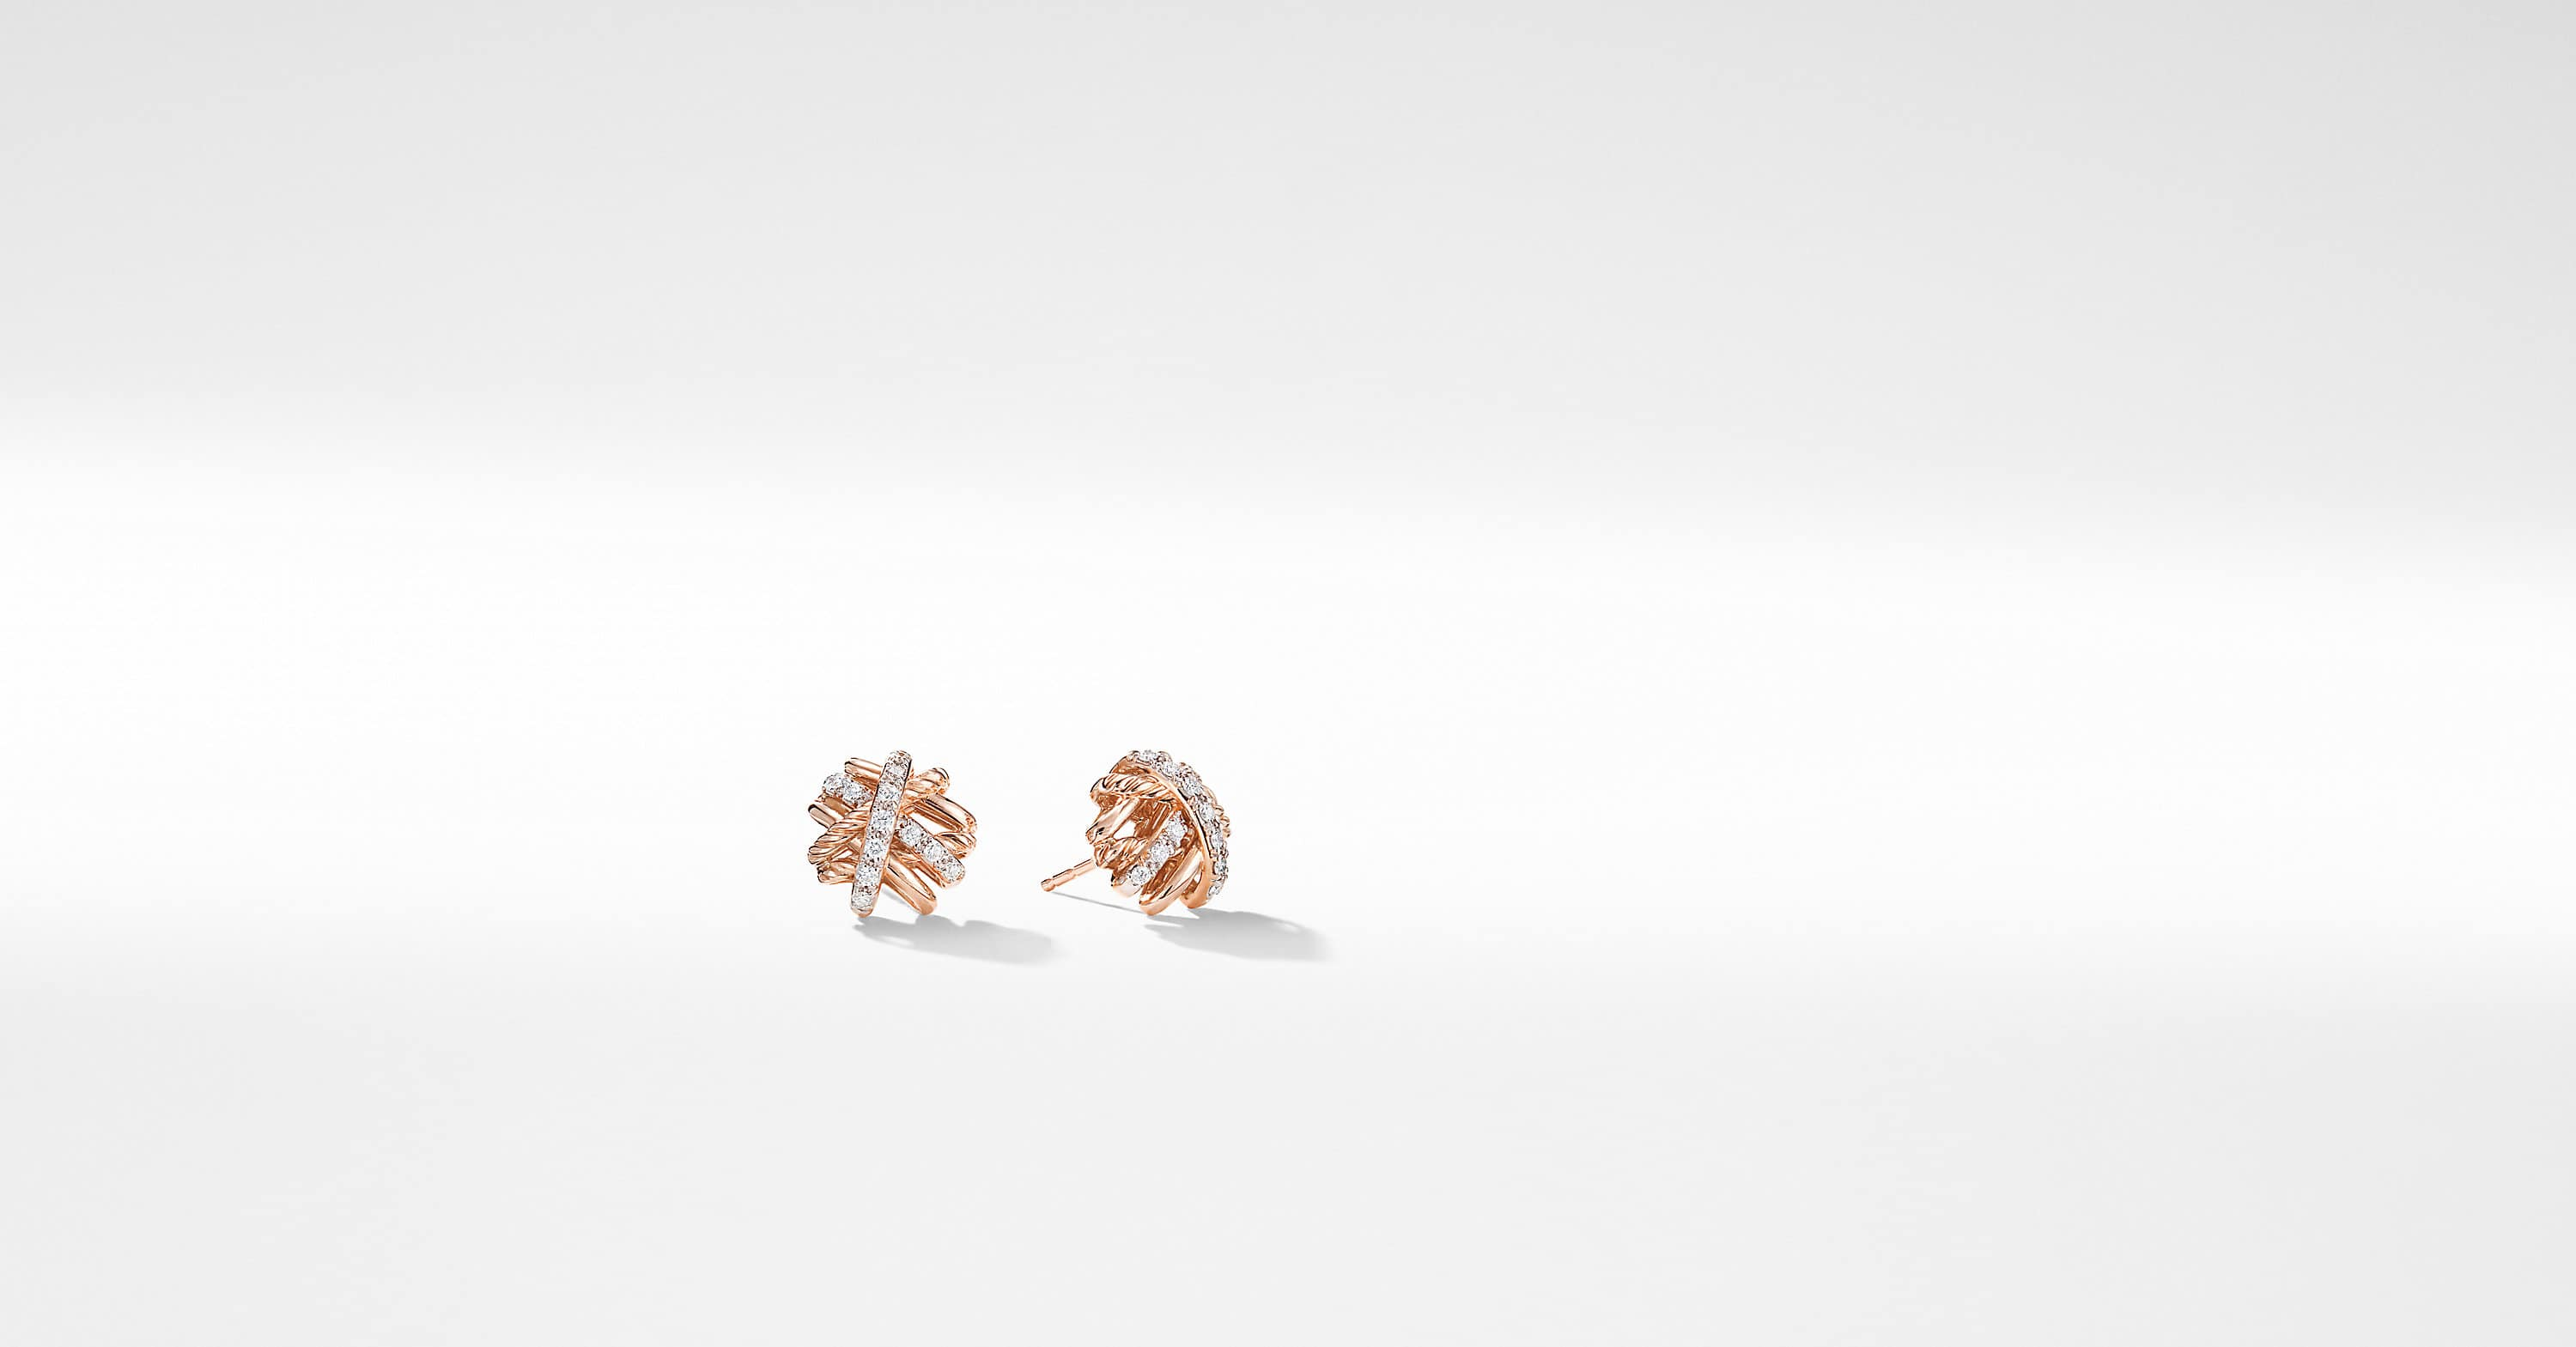 Crossover Earrings with Diamonds in 18K Rose Gold, 11mm